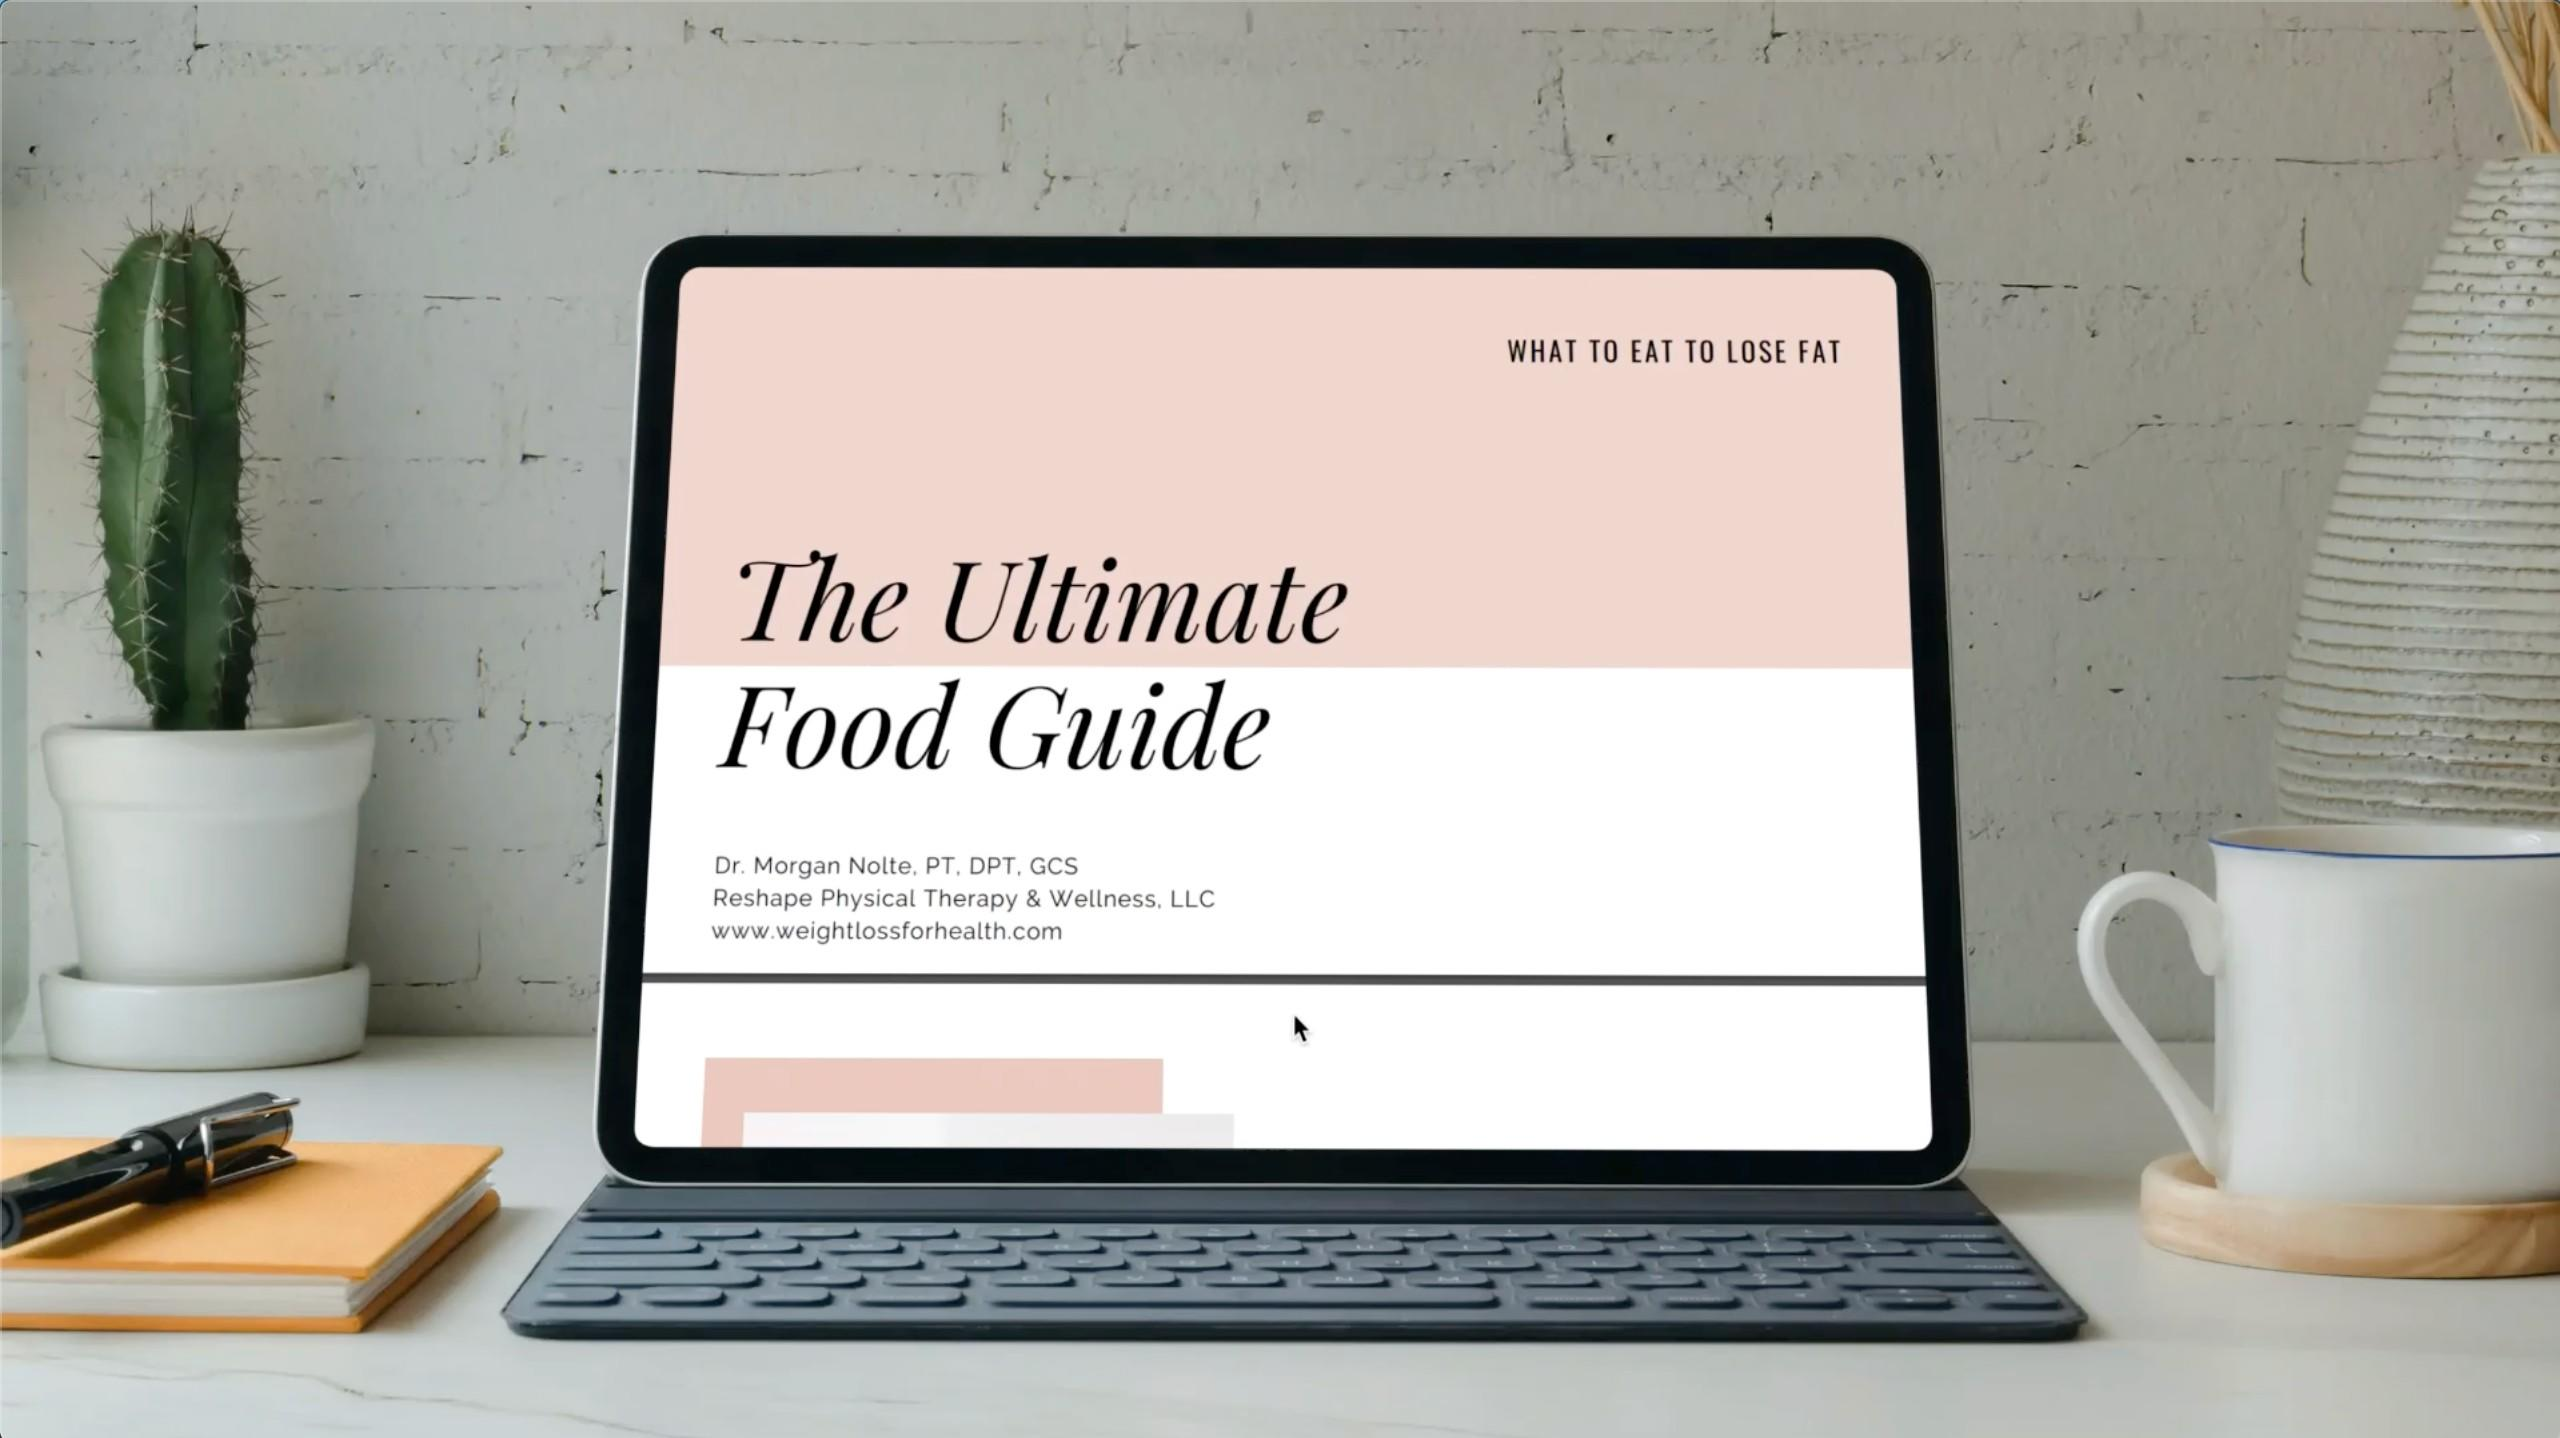 The Ultimate Food Guide   Dr. Morgan Nolte